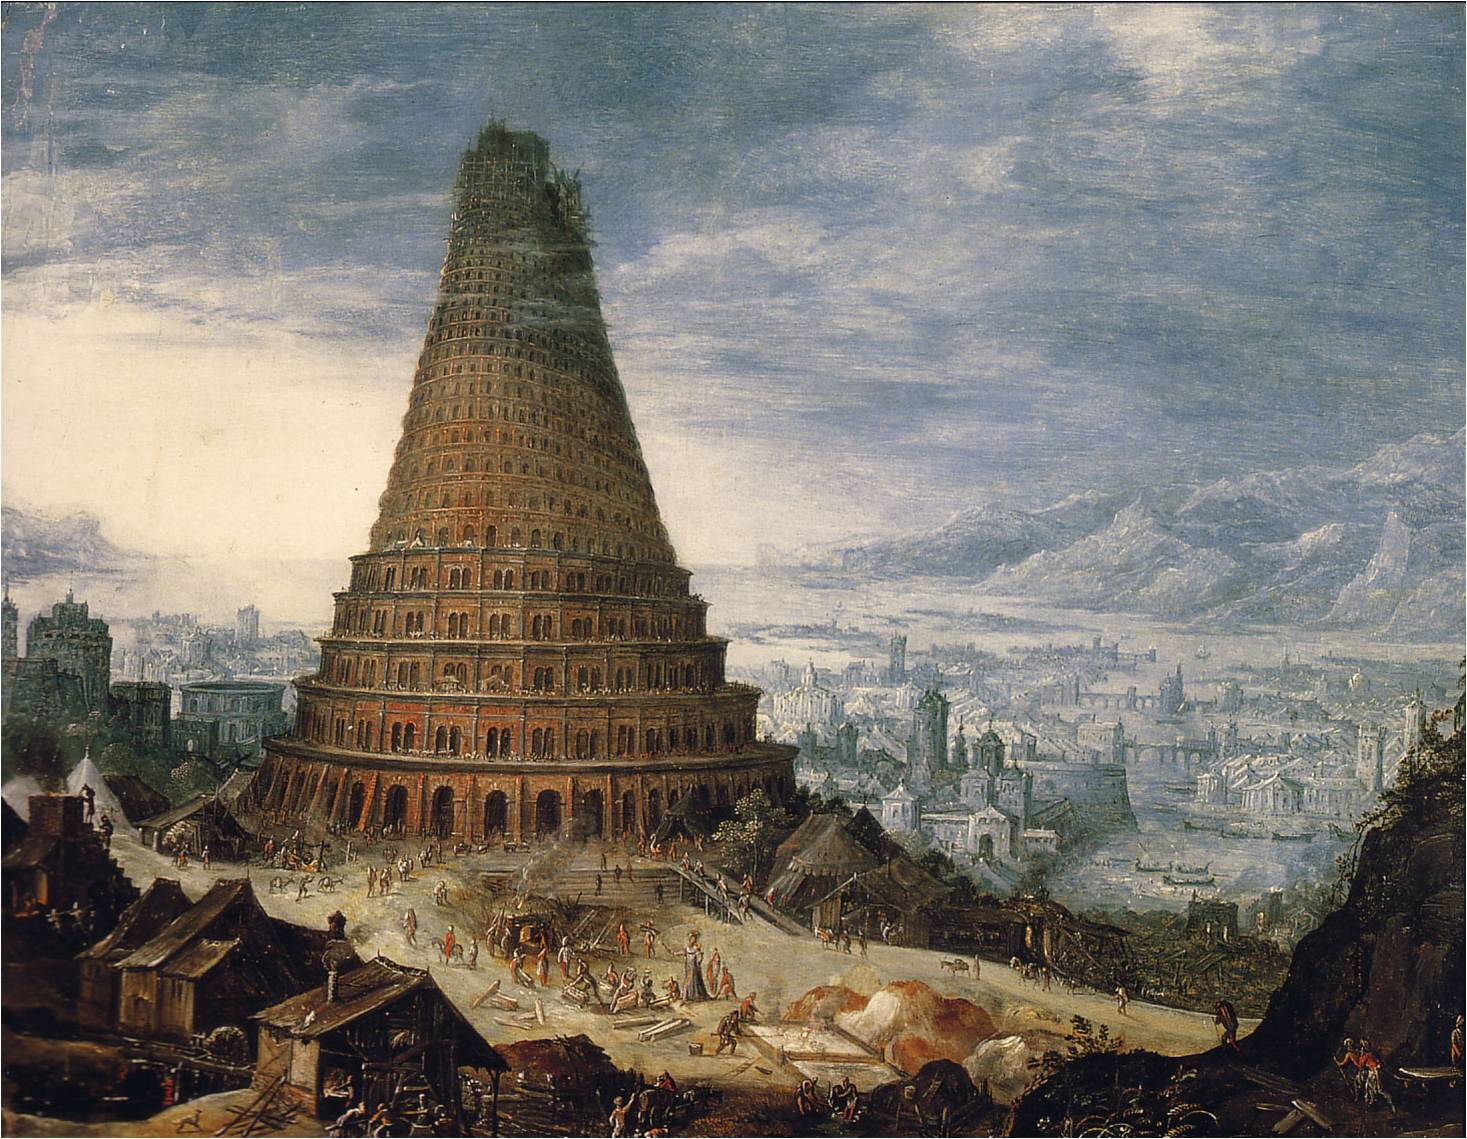 tower-of-babel-by-king-nimrod-ilustration